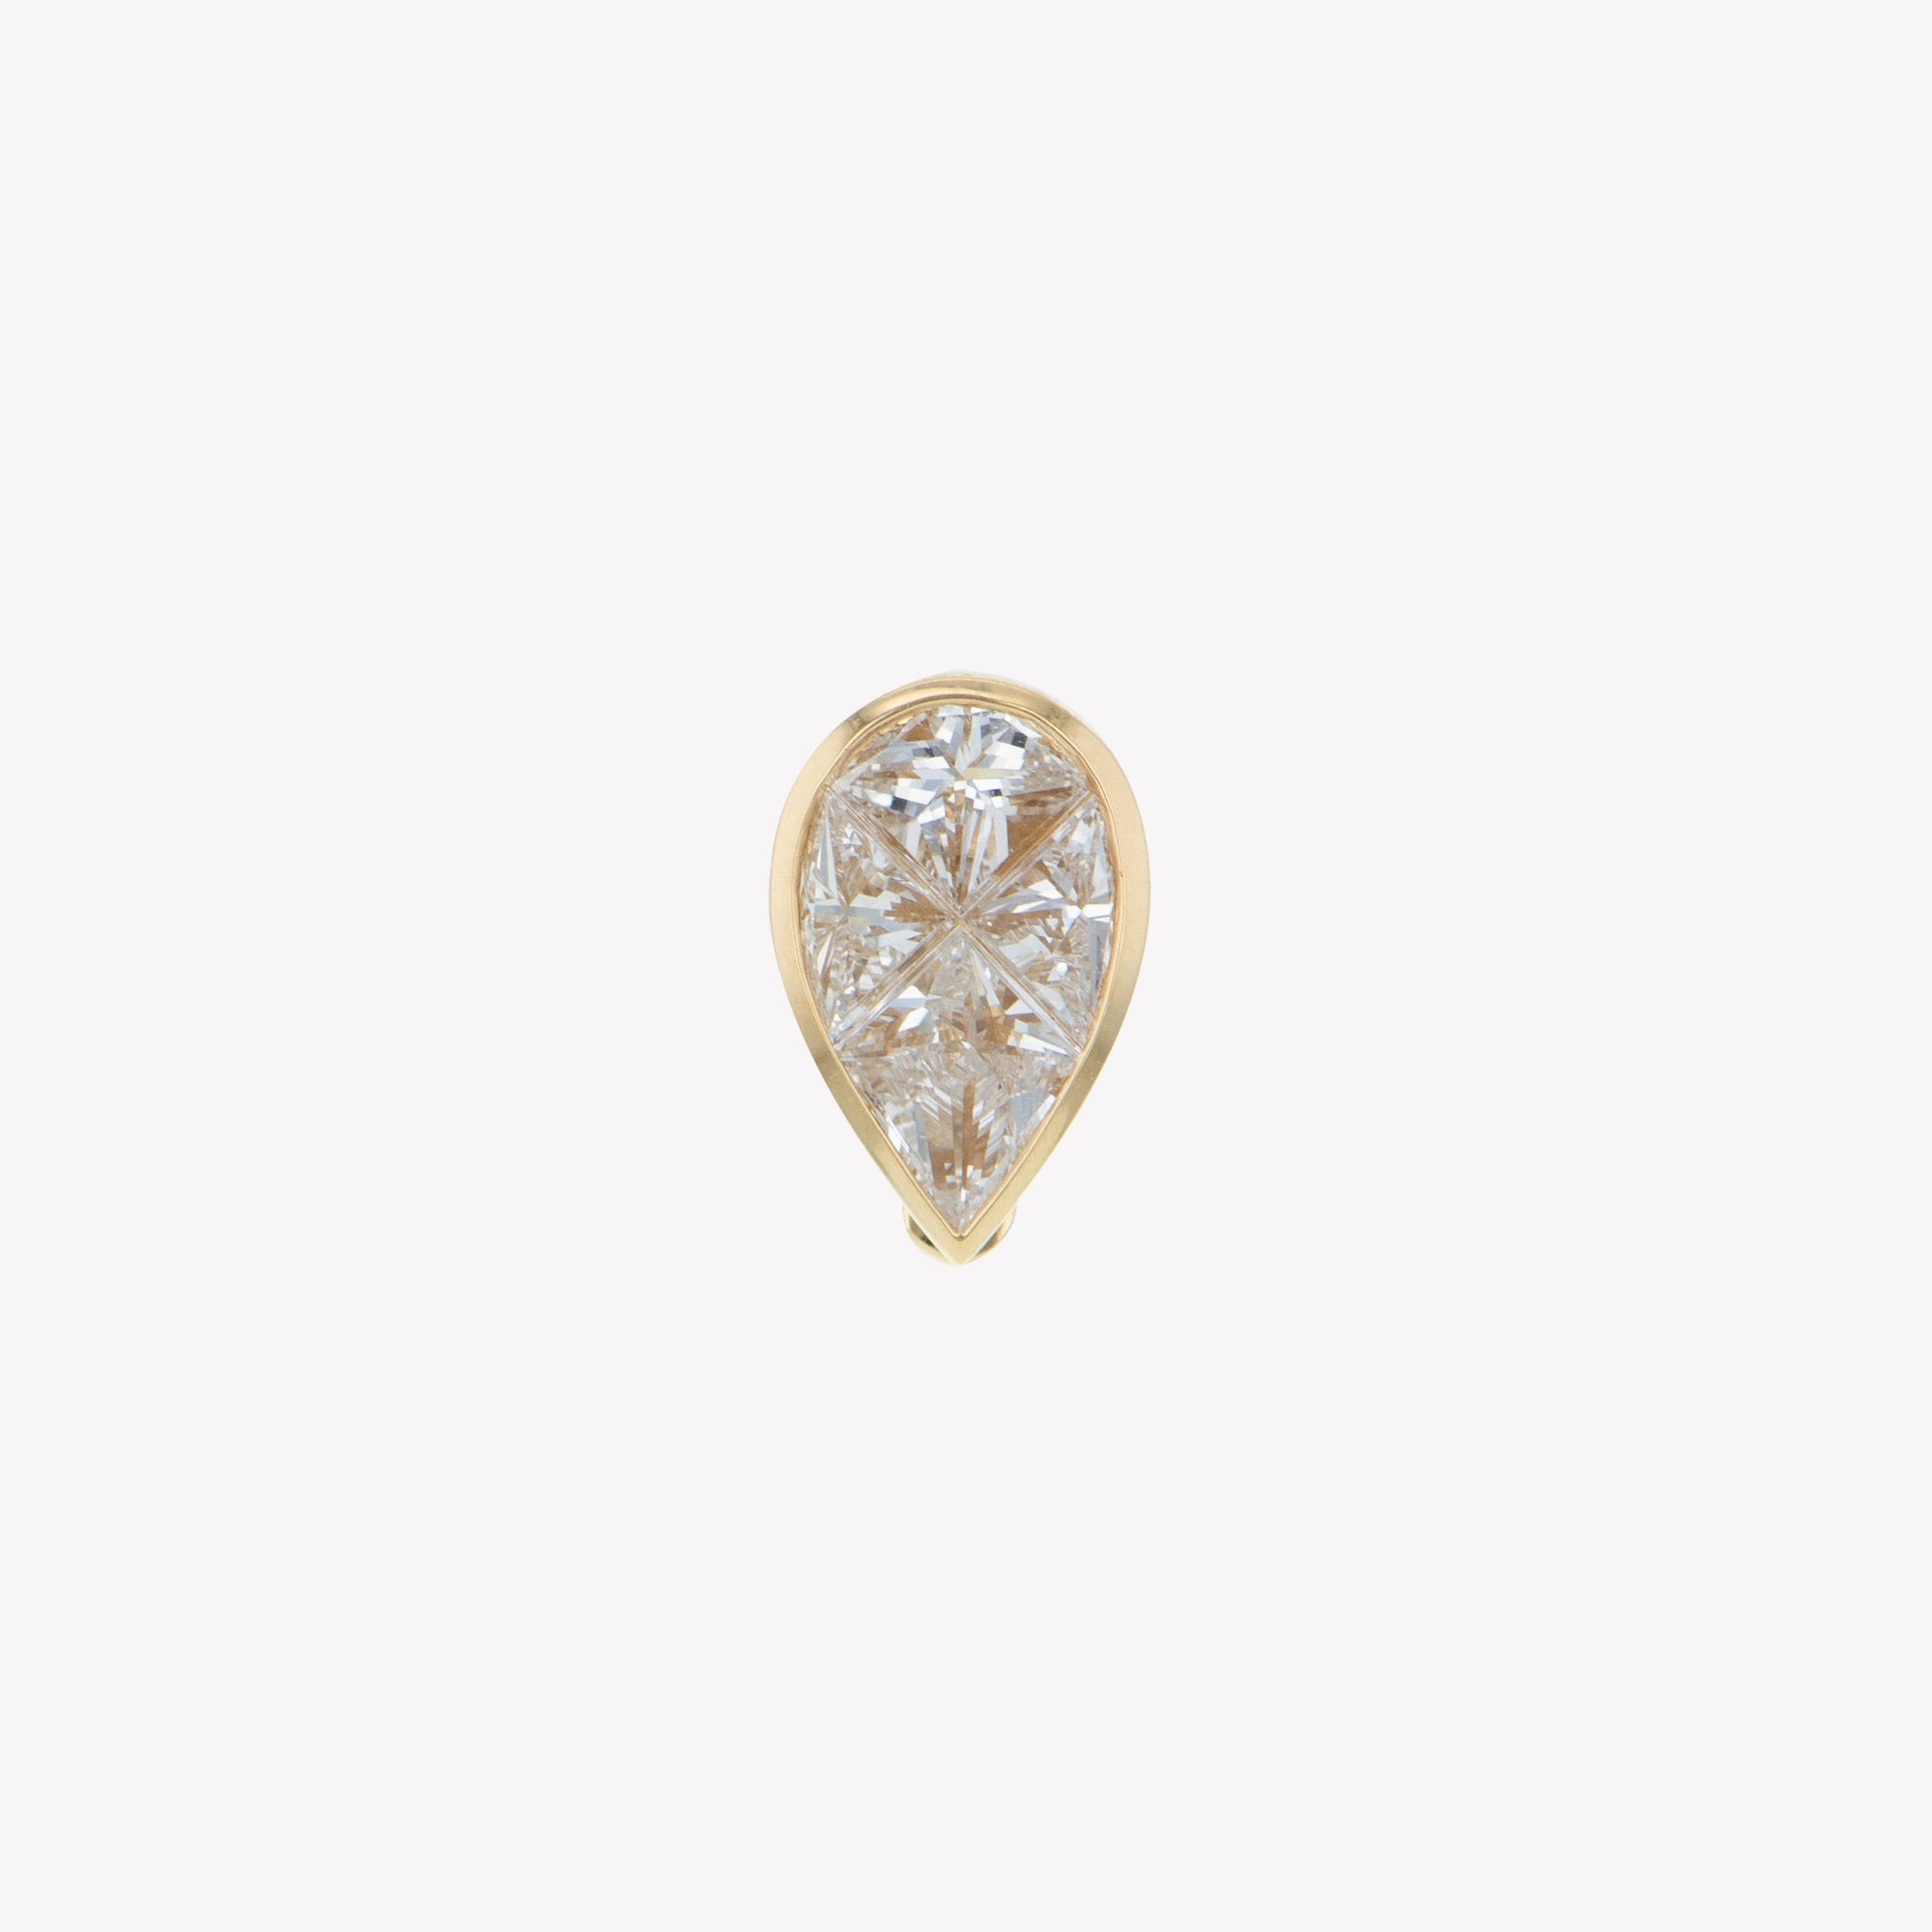 Detachable Yellow Gold Pear Head with Octa Diamond Band